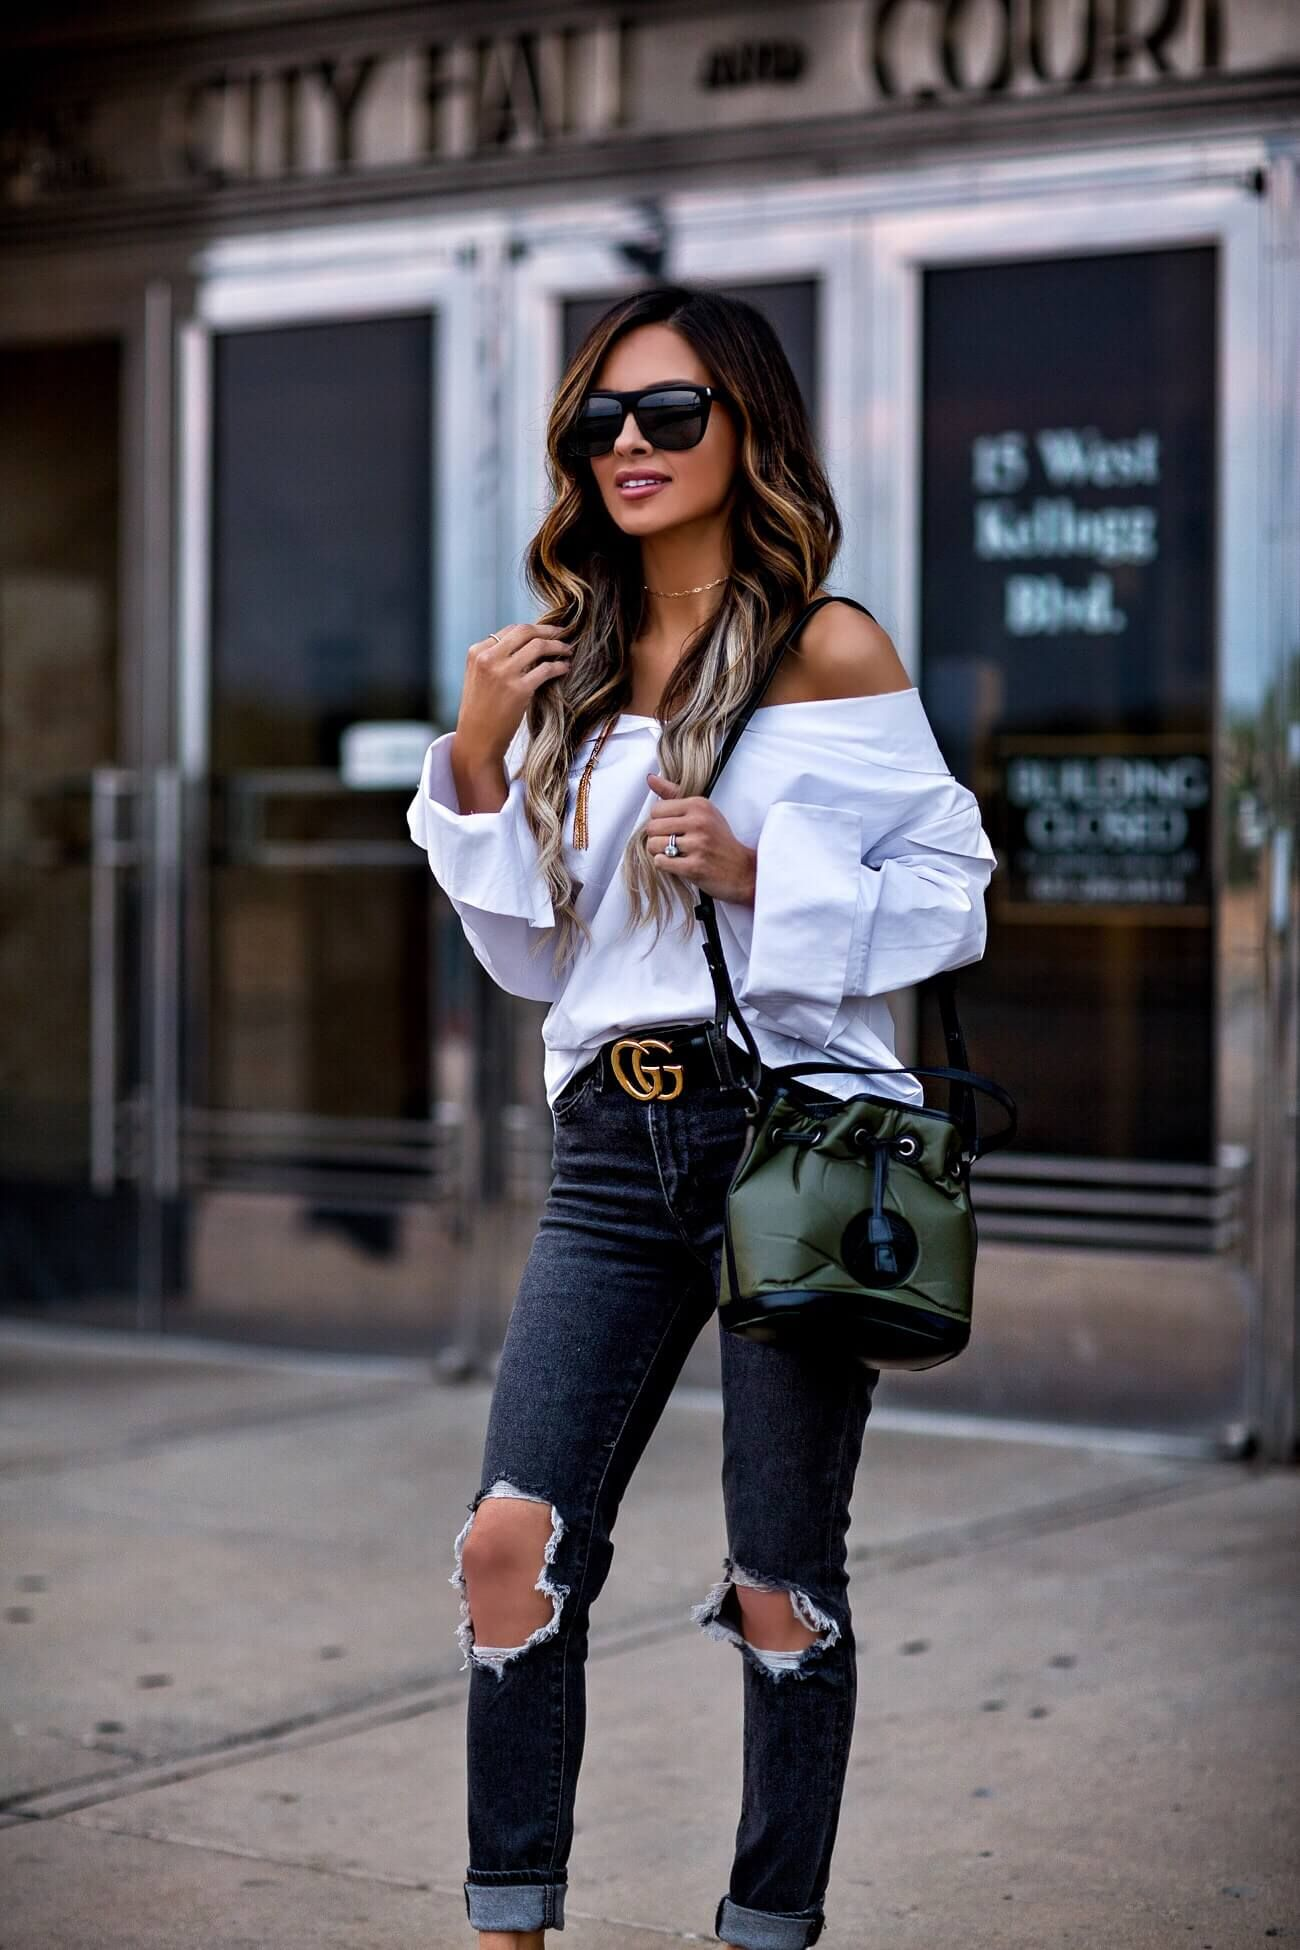 598298556acb fashion blogger mia mia mine in a white button down top and a gucci belt